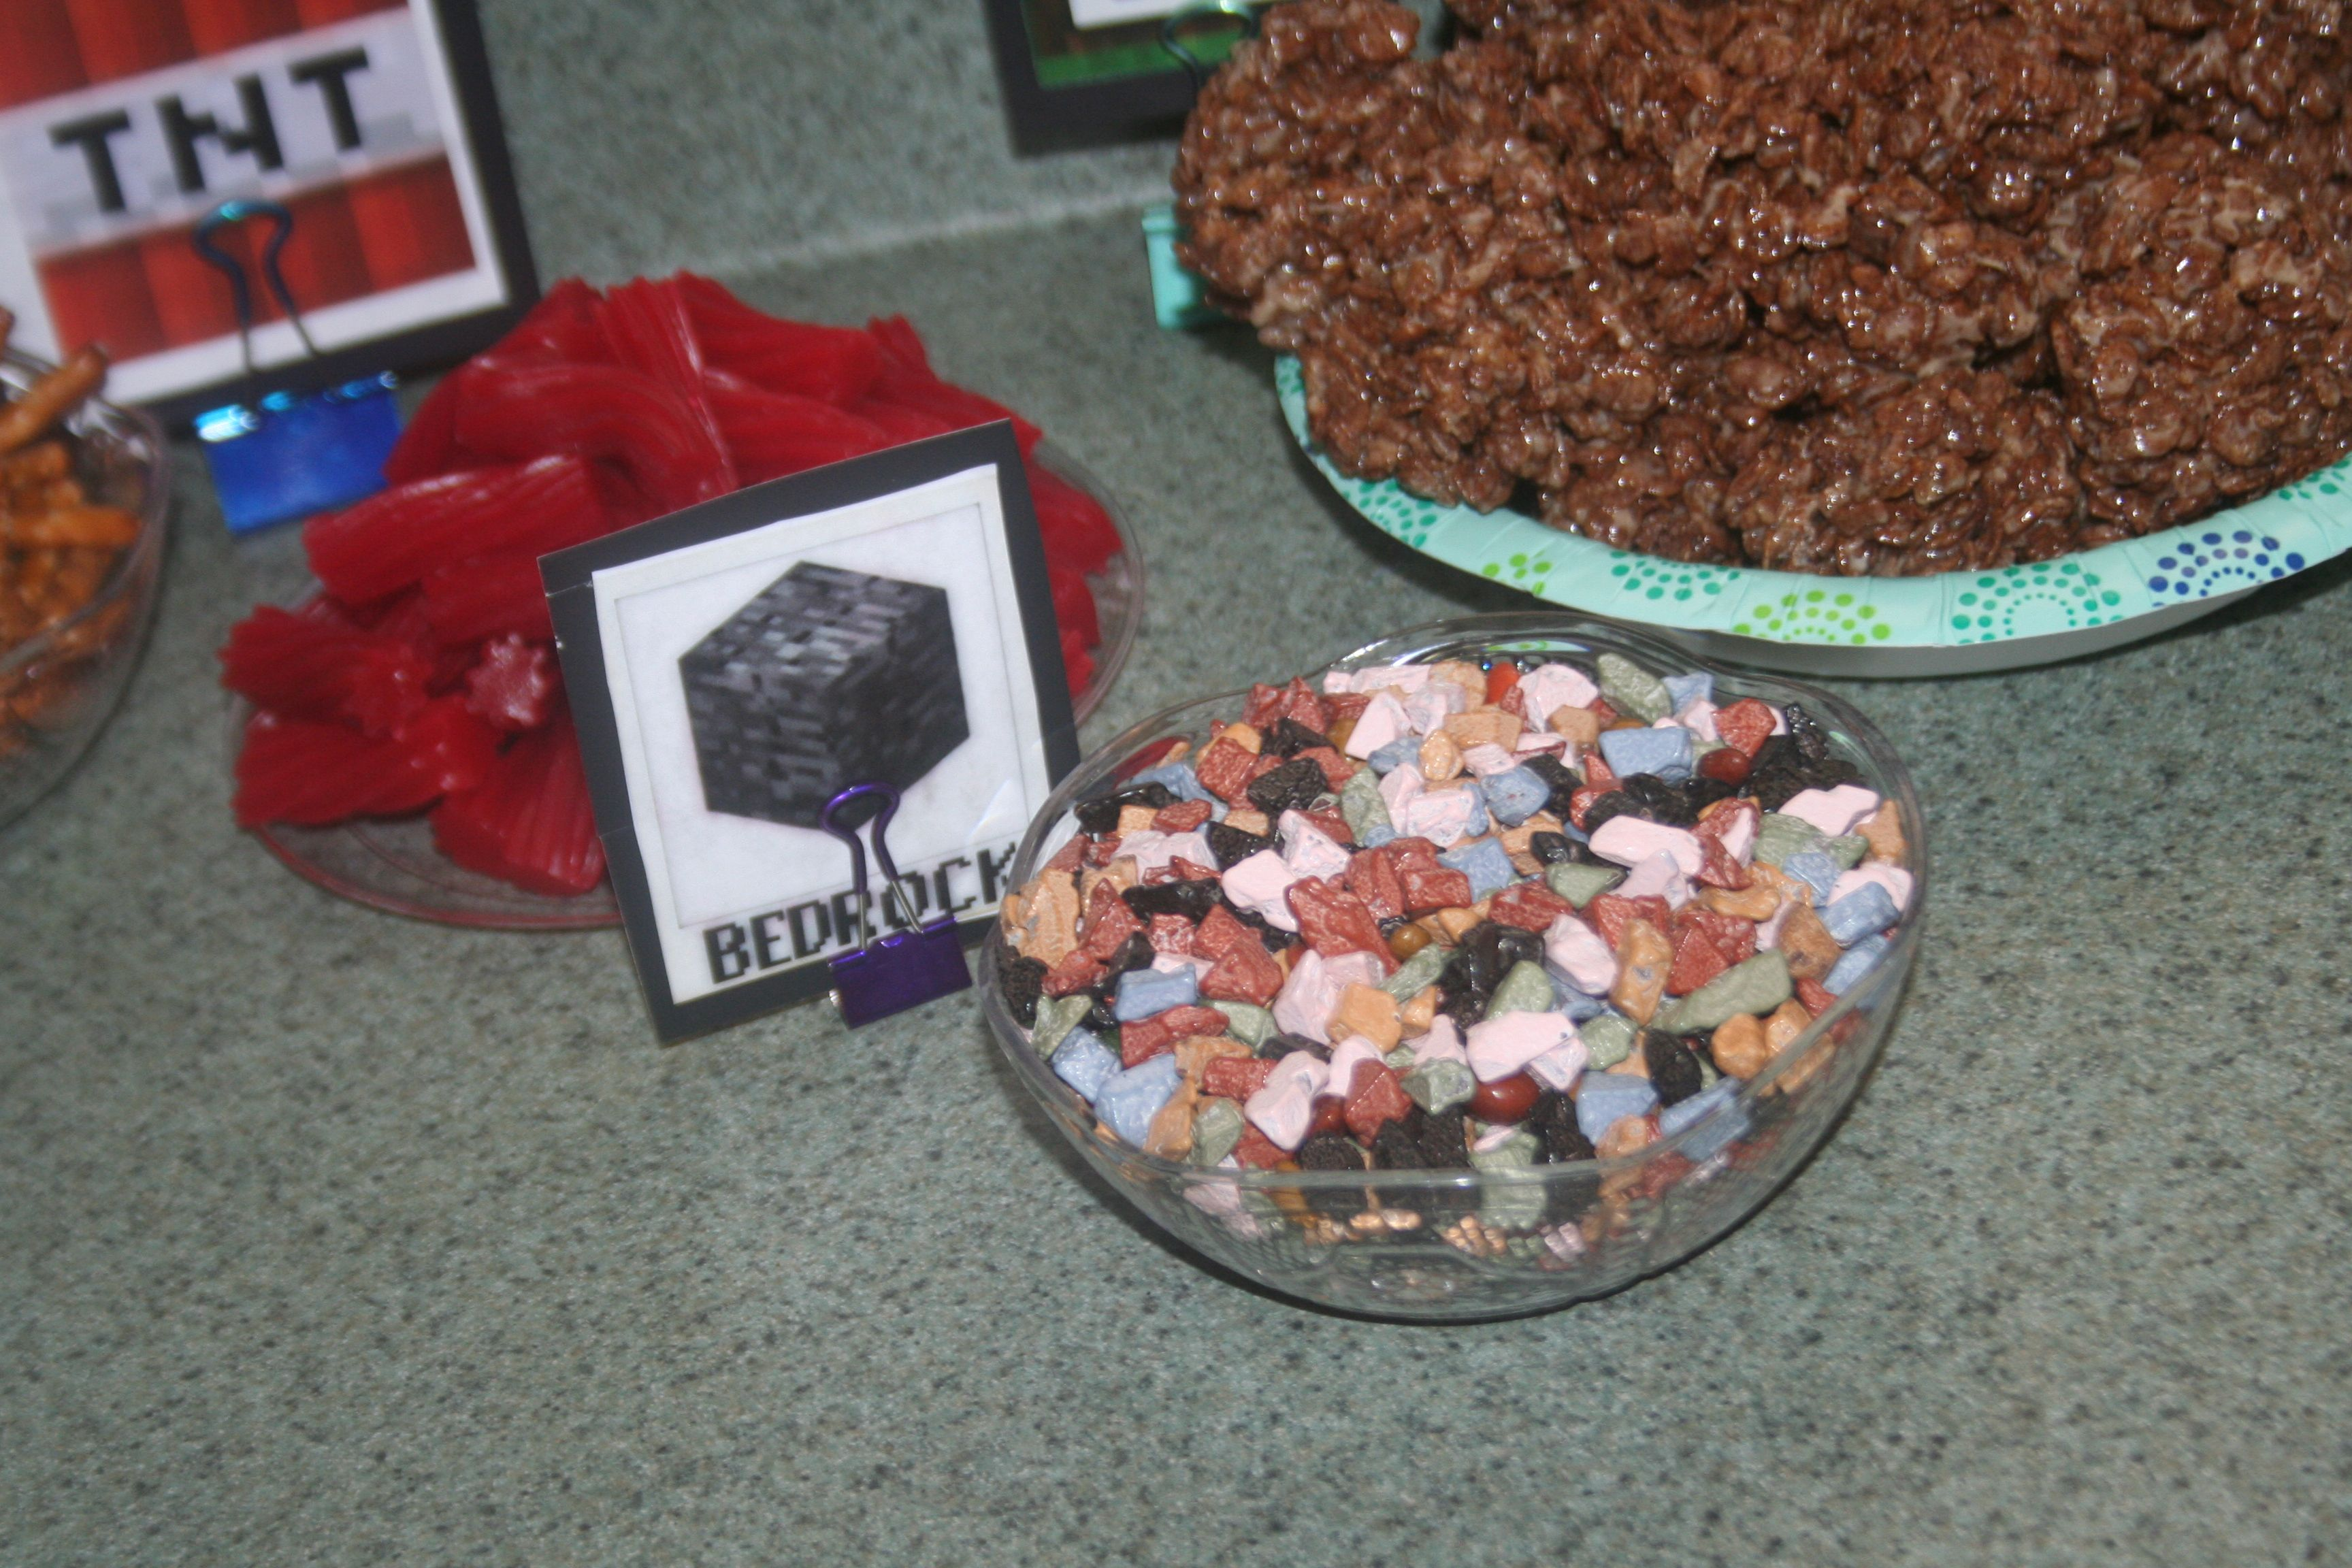 Terrific Bedrock Chocolate Rock Candy From Winco With Images Funny Birthday Cards Online Overcheapnameinfo